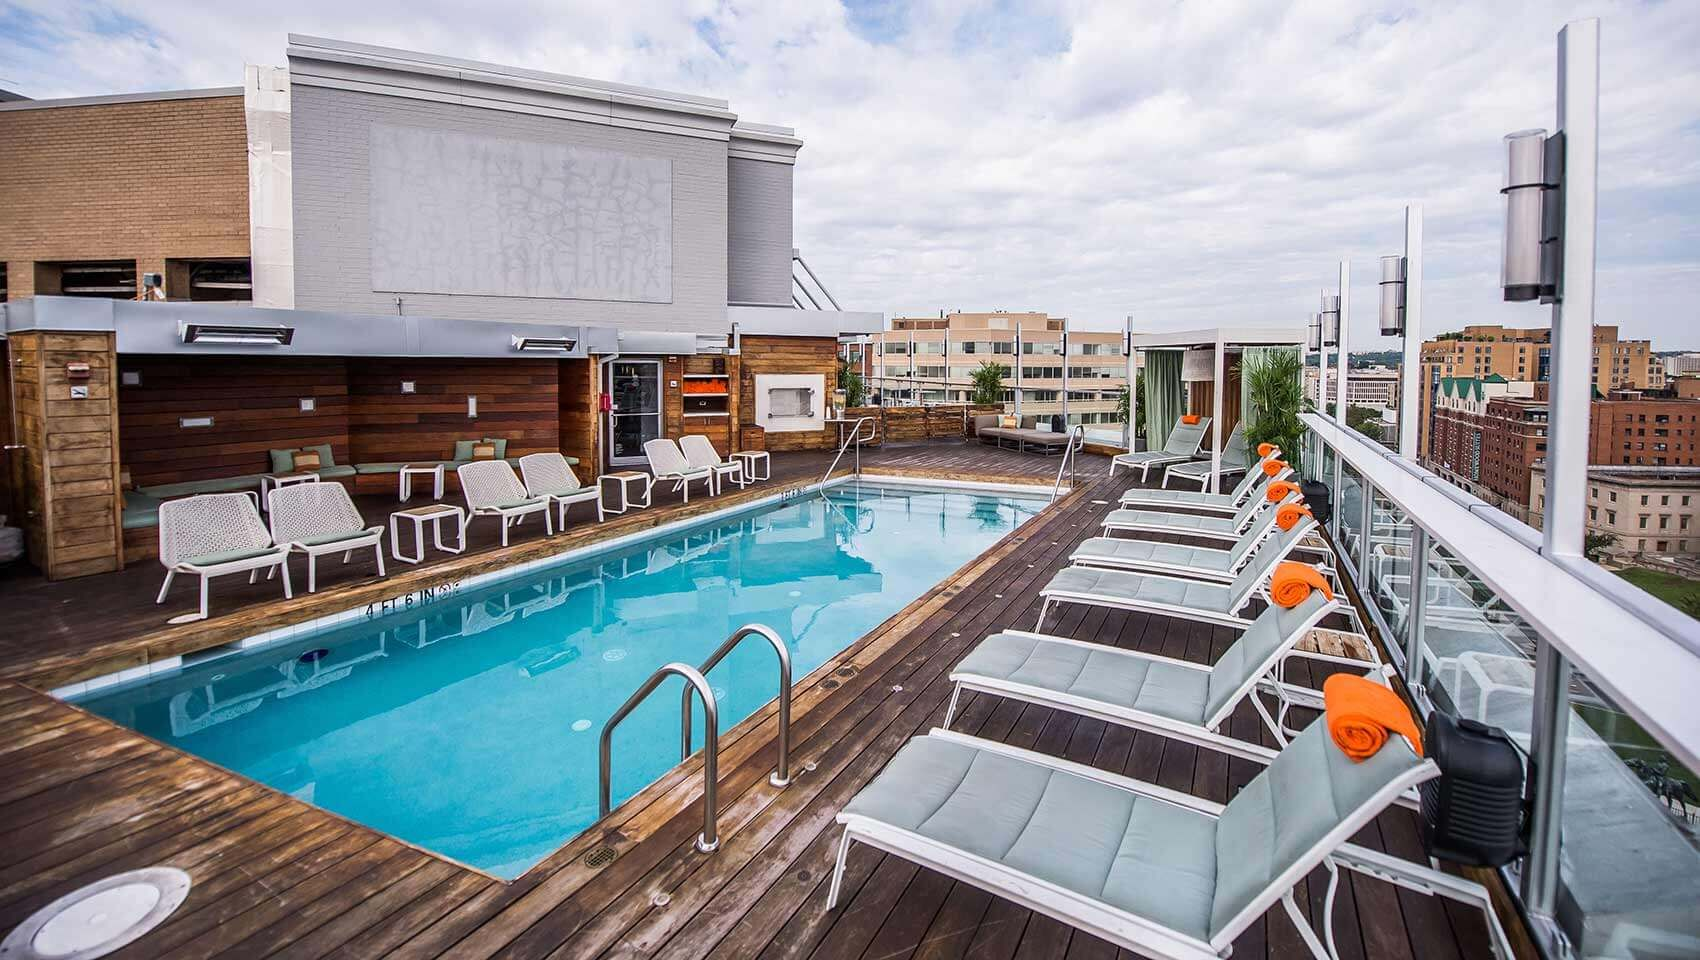 Some Of The Best Rooftop Swimming Pool Design Ideas Rooftop Pool Swimming Pool House Pool